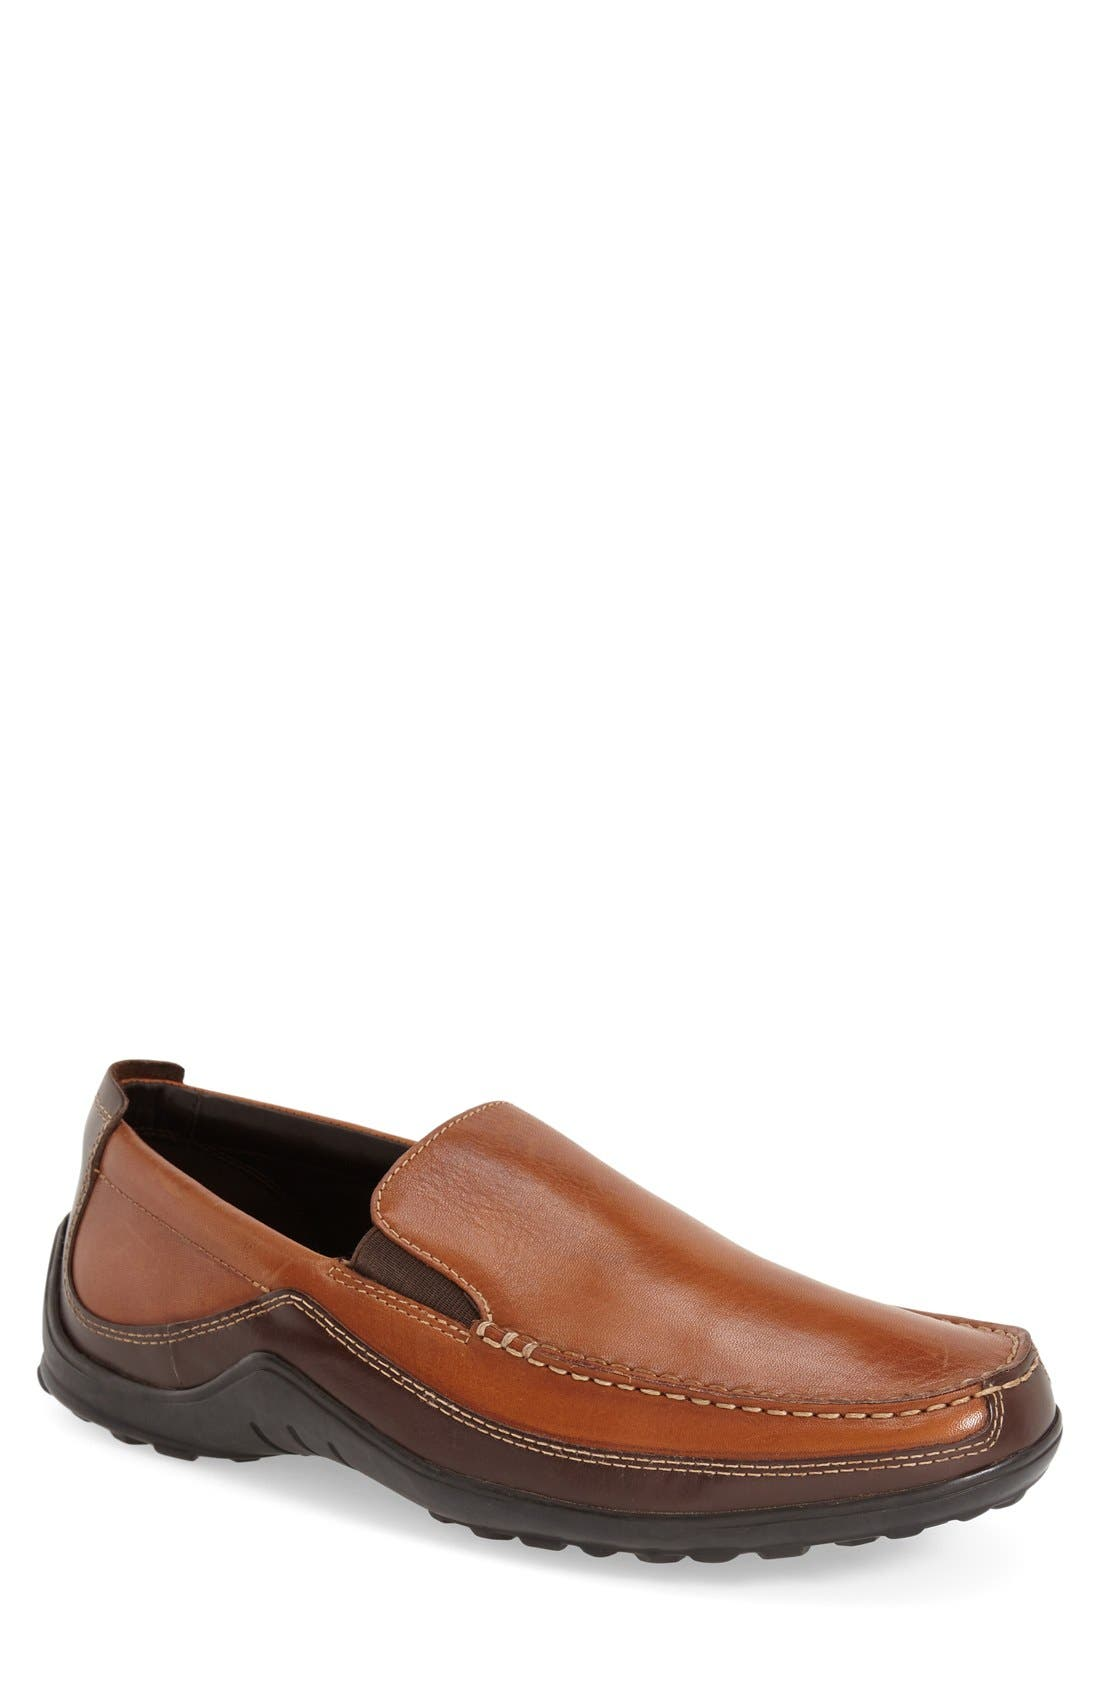 Main Image - Cole Haan 'Tucker Venetian' Loafer